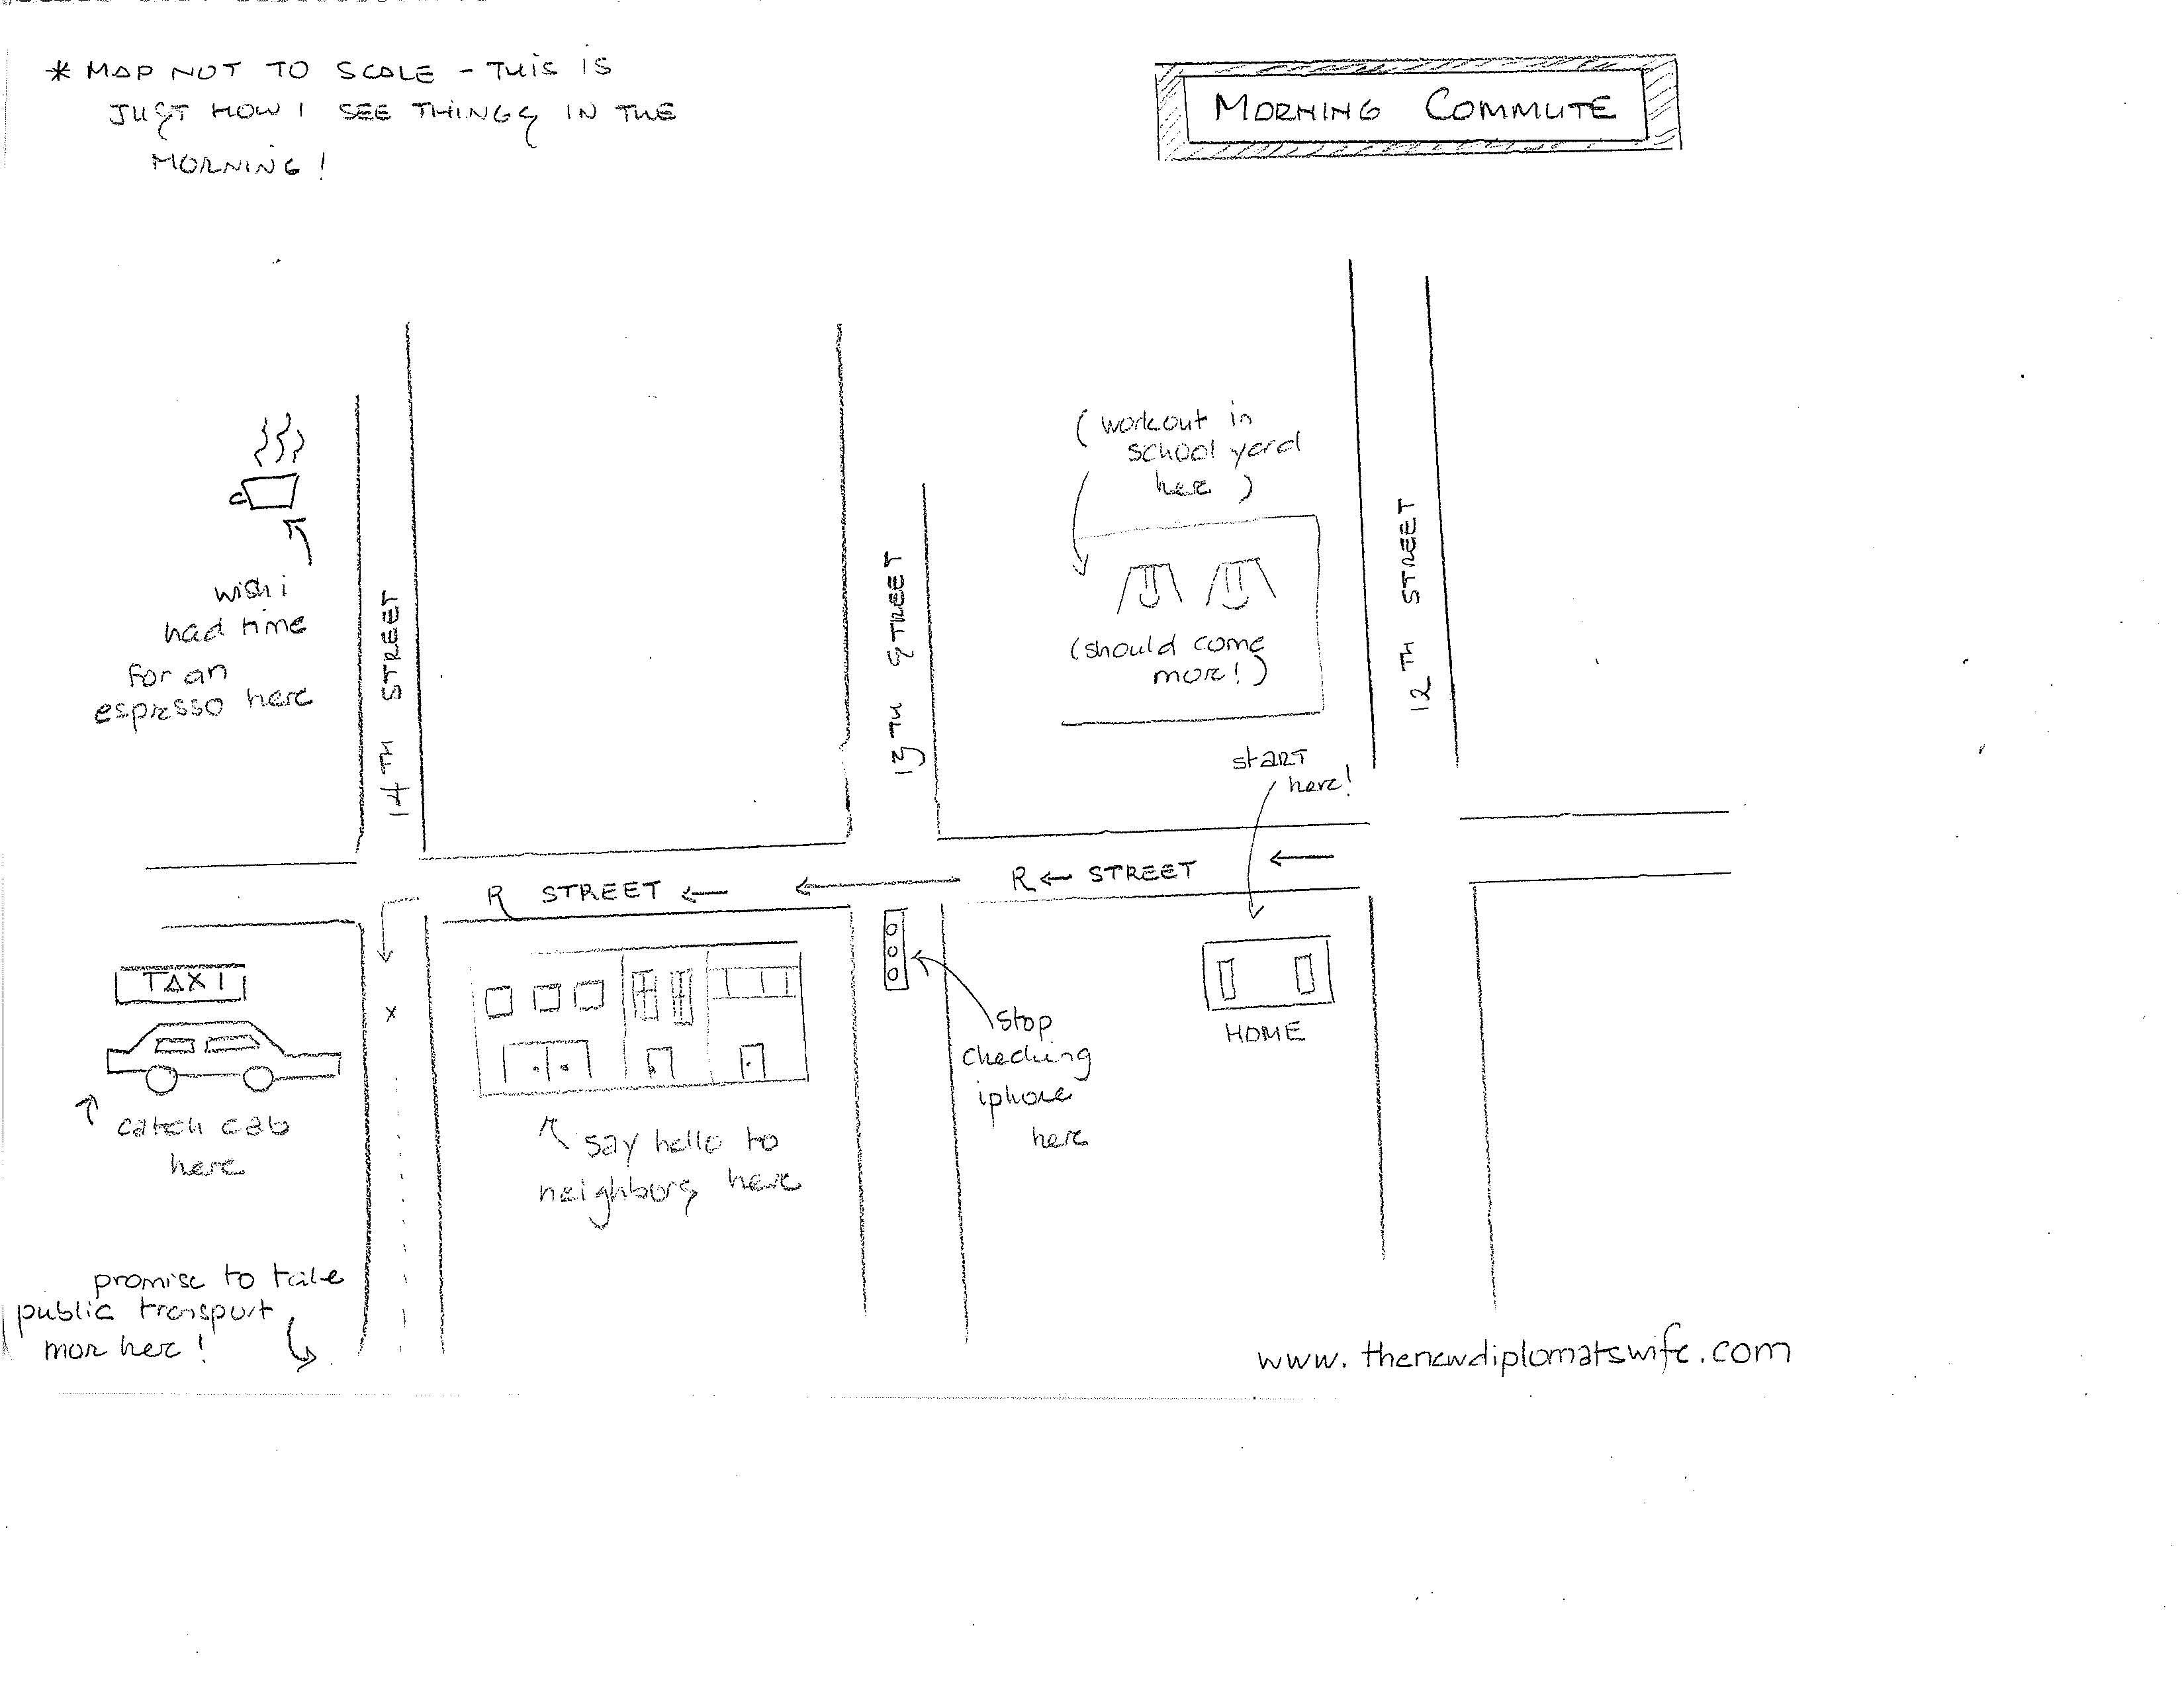 The Hand Drawn Commute... - image 1 - student project